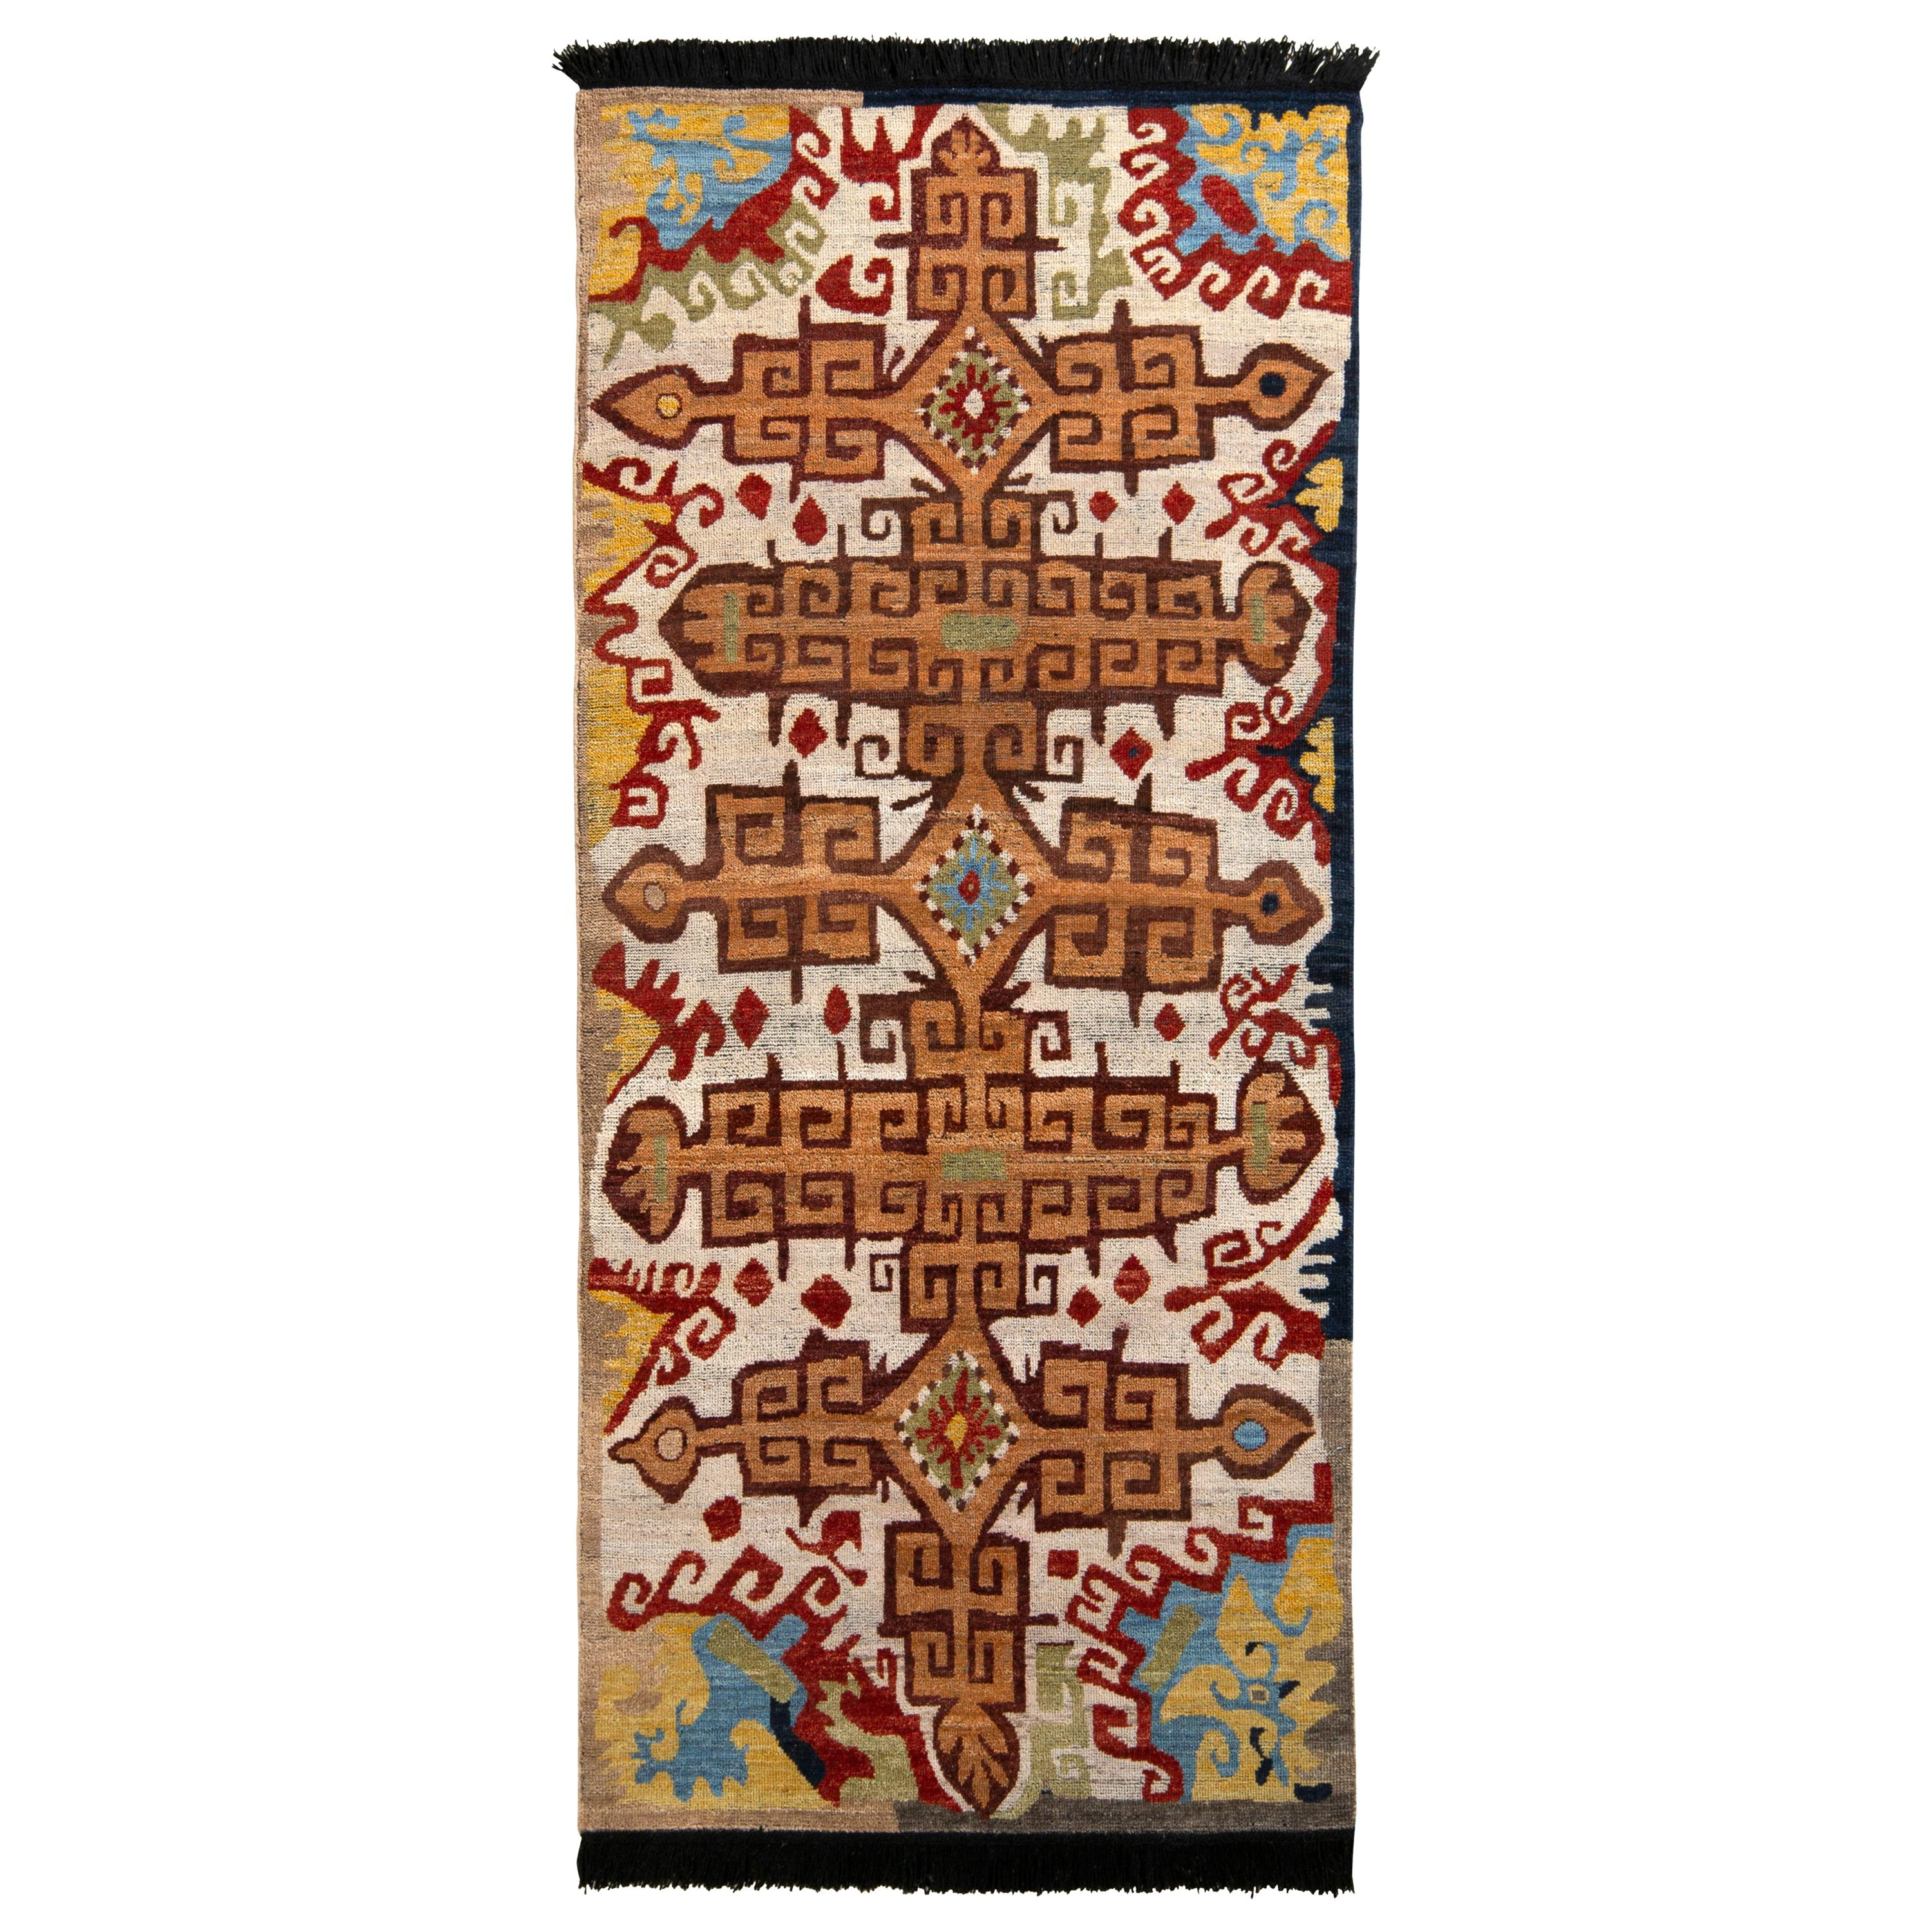 Rug & Kilim's Russian Style Rug in Orange and Beige Brown Tribal Pattern